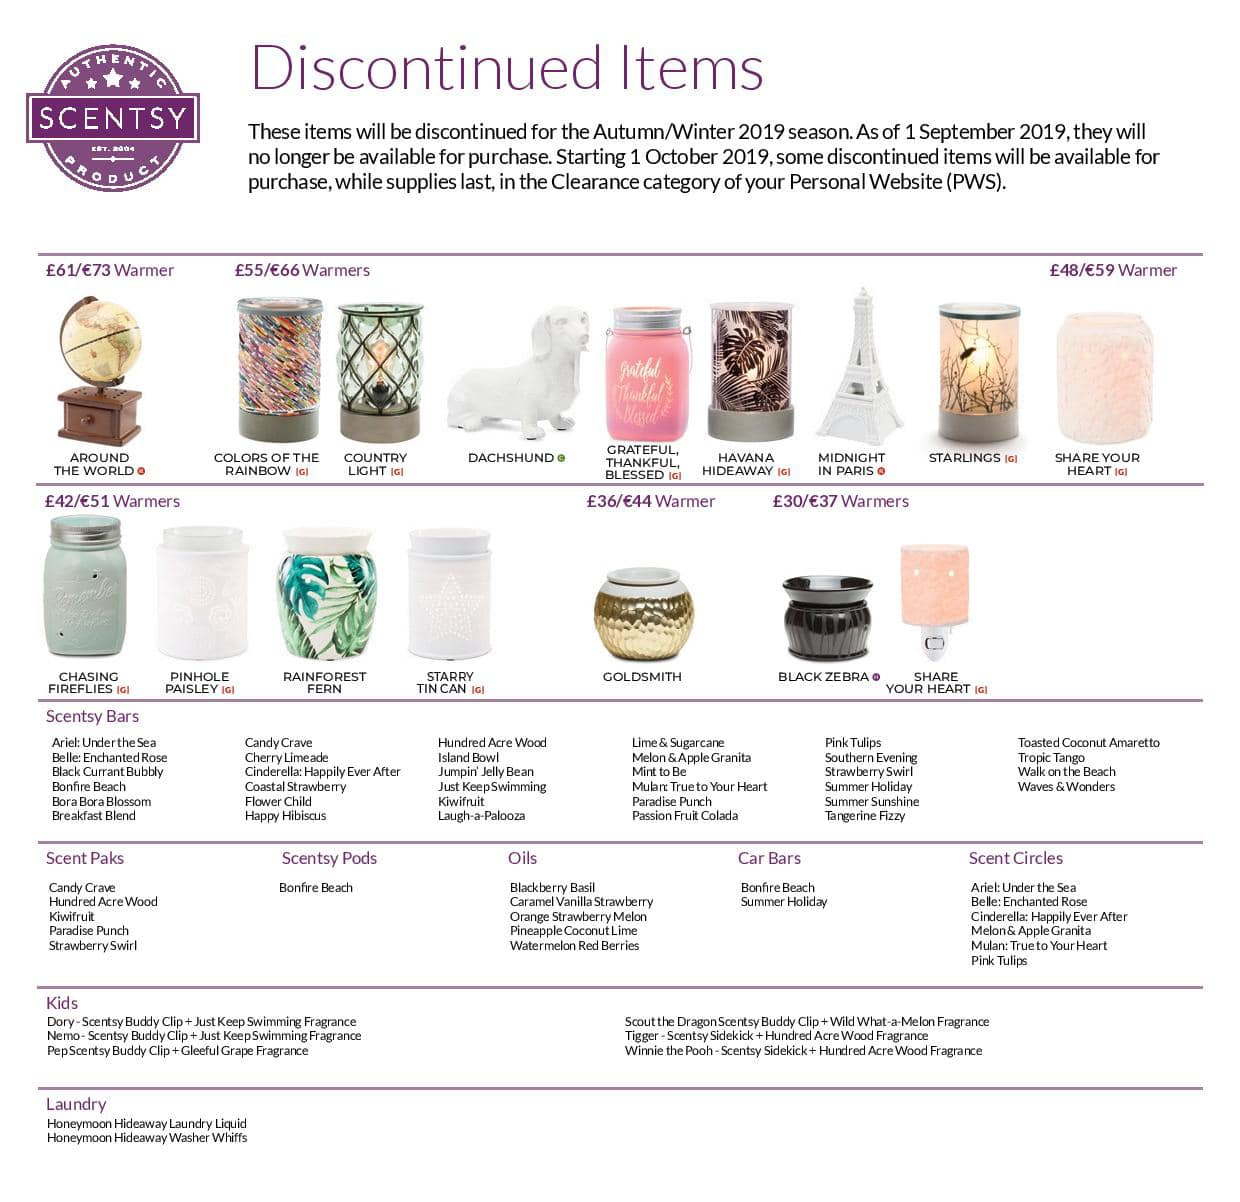 Scentsy Discontinued Items 2019 Autumn Winter